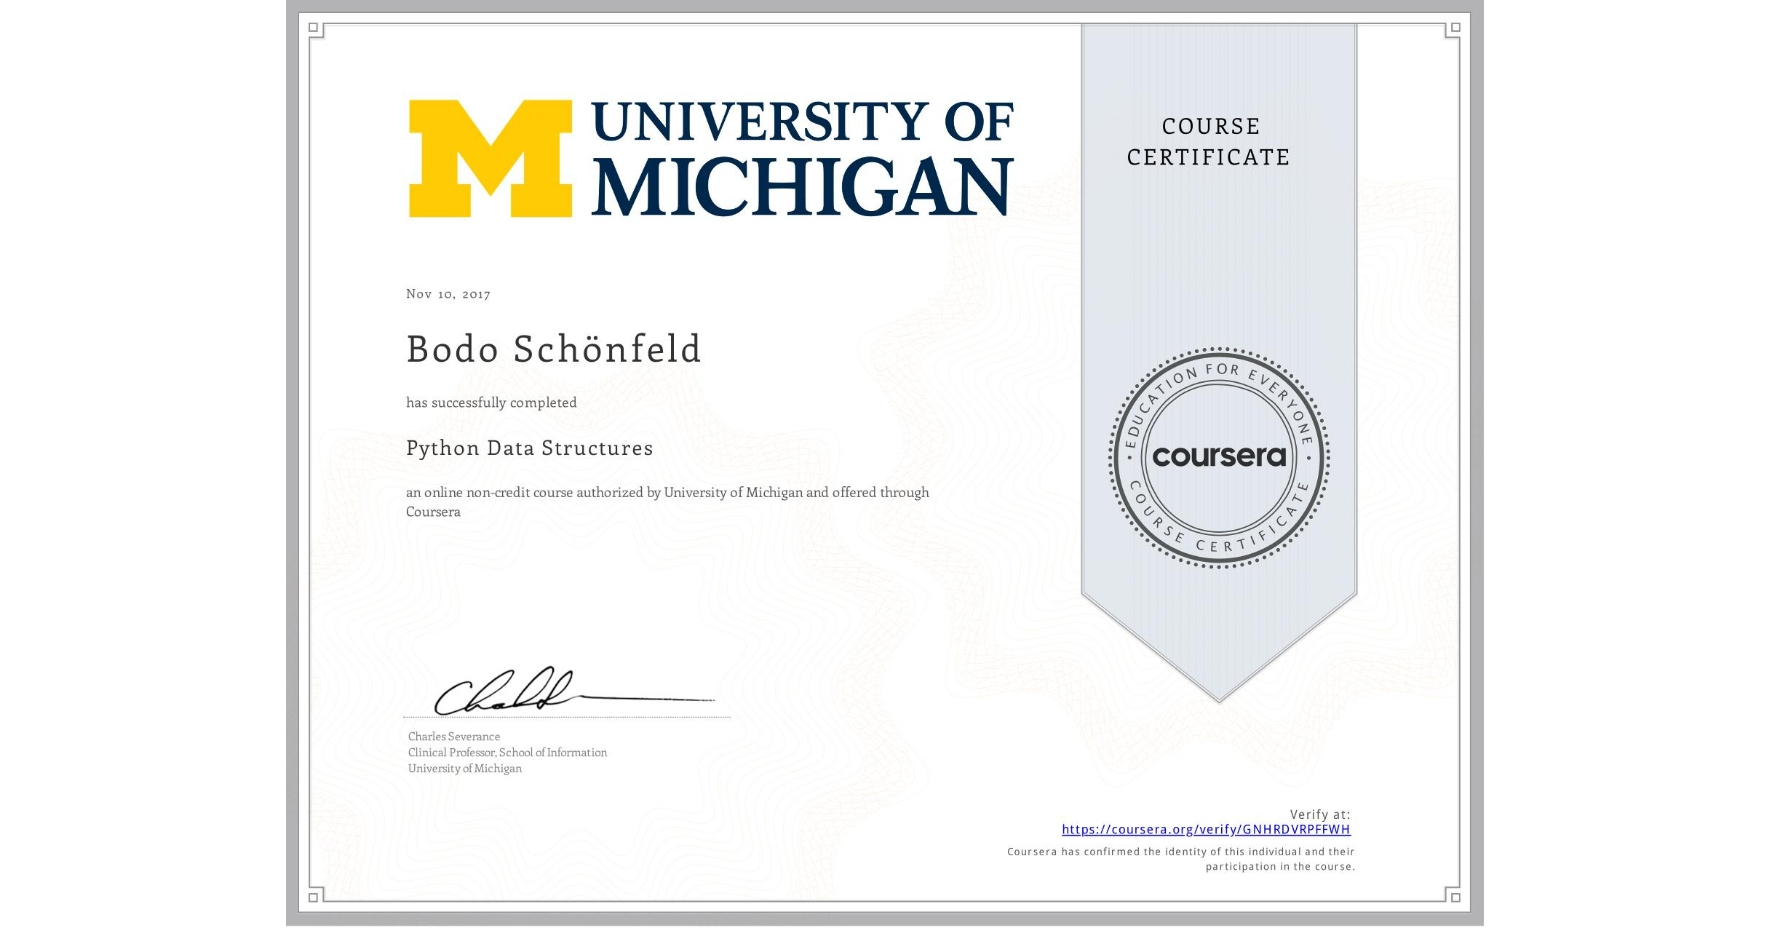 View certificate for Bodo Schönfeld, Python Data Structures, an online non-credit course authorized by University of Michigan and offered through Coursera